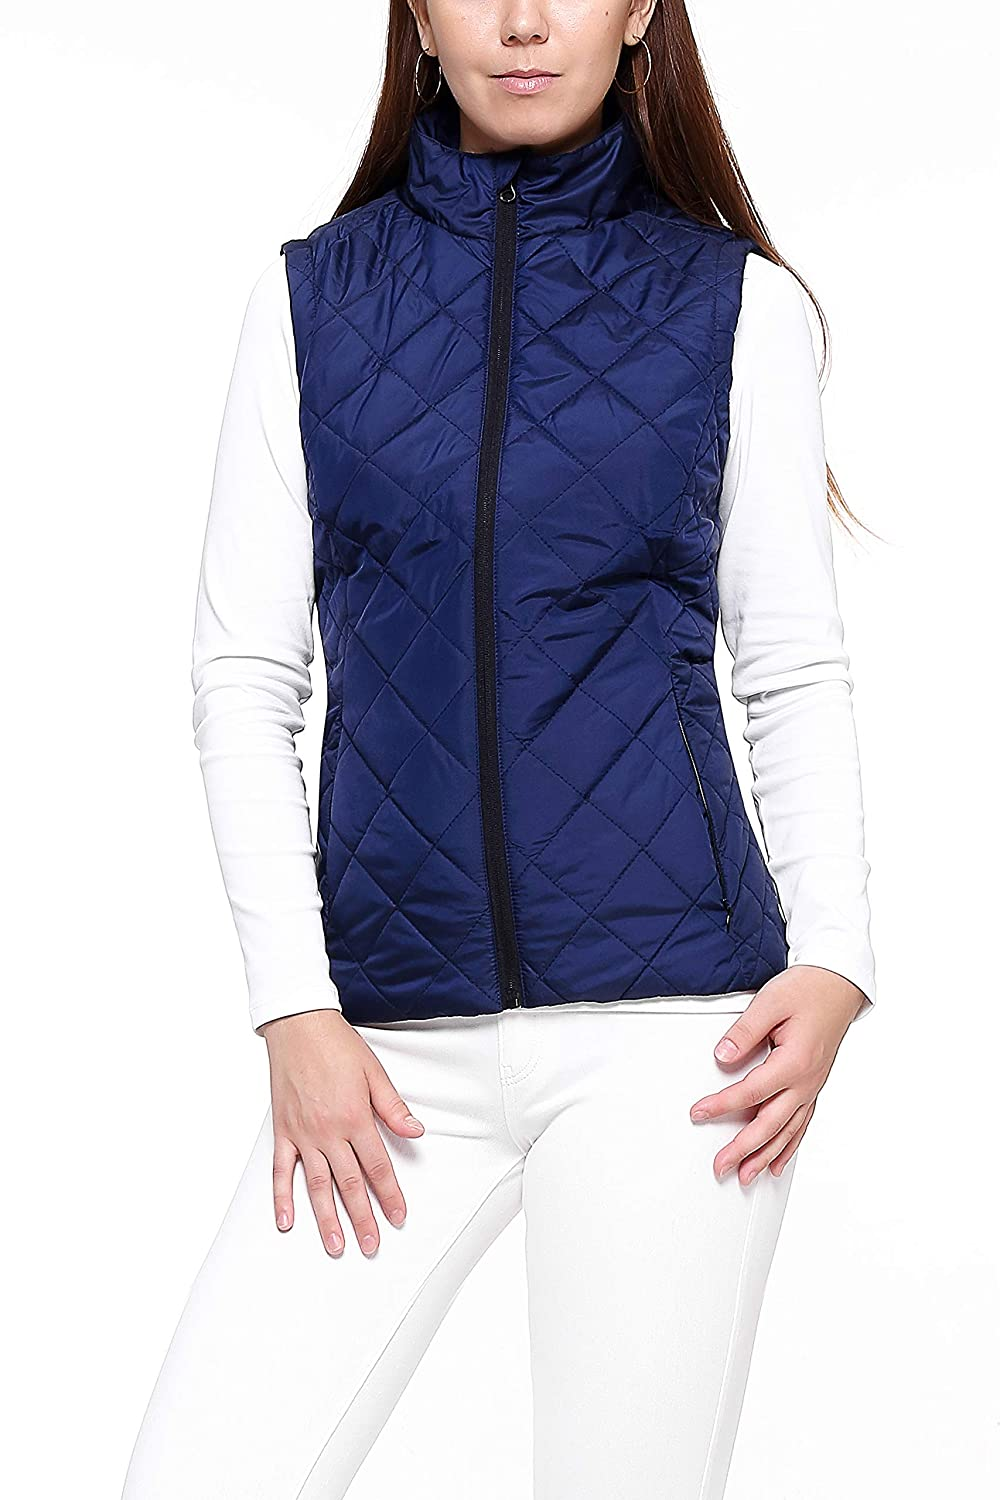 More Golooper Lightweight Quilted High Collar Women's Vest